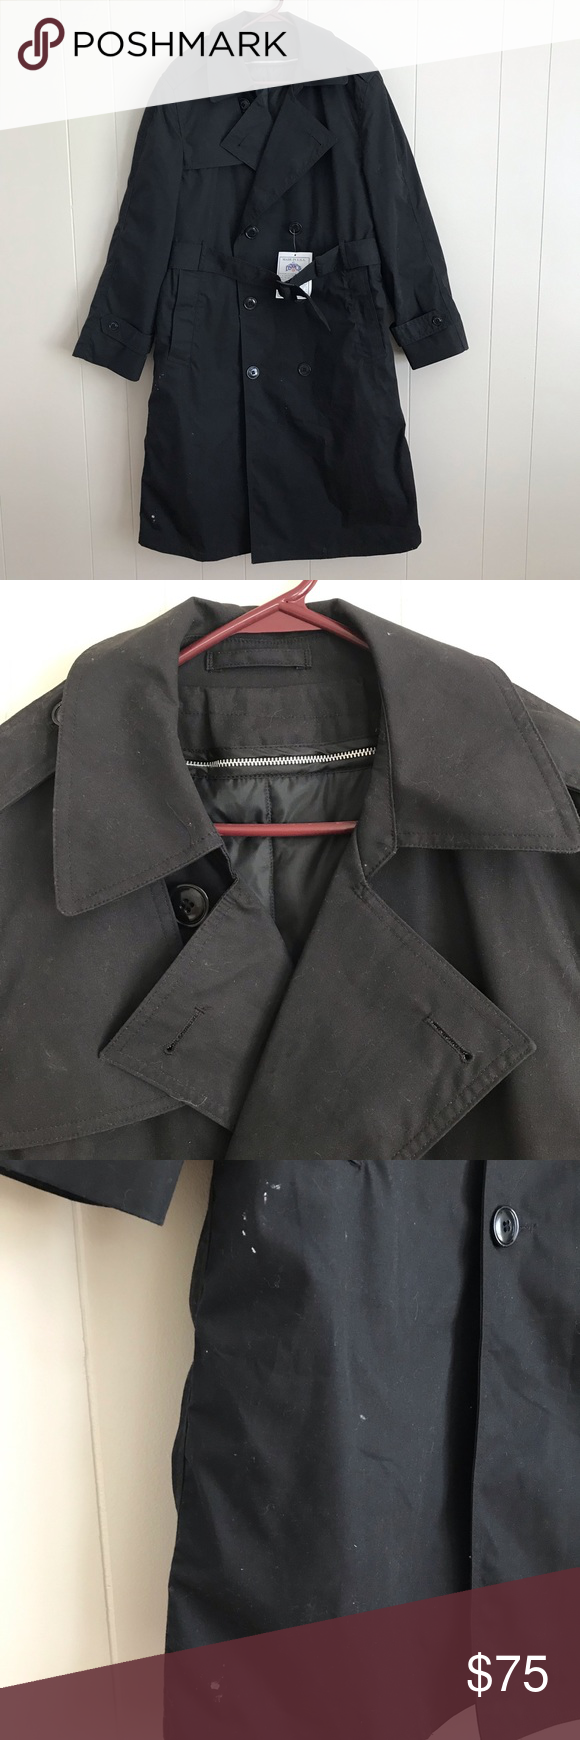 Dscp Military Black Trench Coat Zip Out Liner 38s Dscp Garrison Collection Usa Made Men S Military Double Bre Trench Coat Black Trench Coat Trench Coat Jackets [ 1740 x 580 Pixel ]